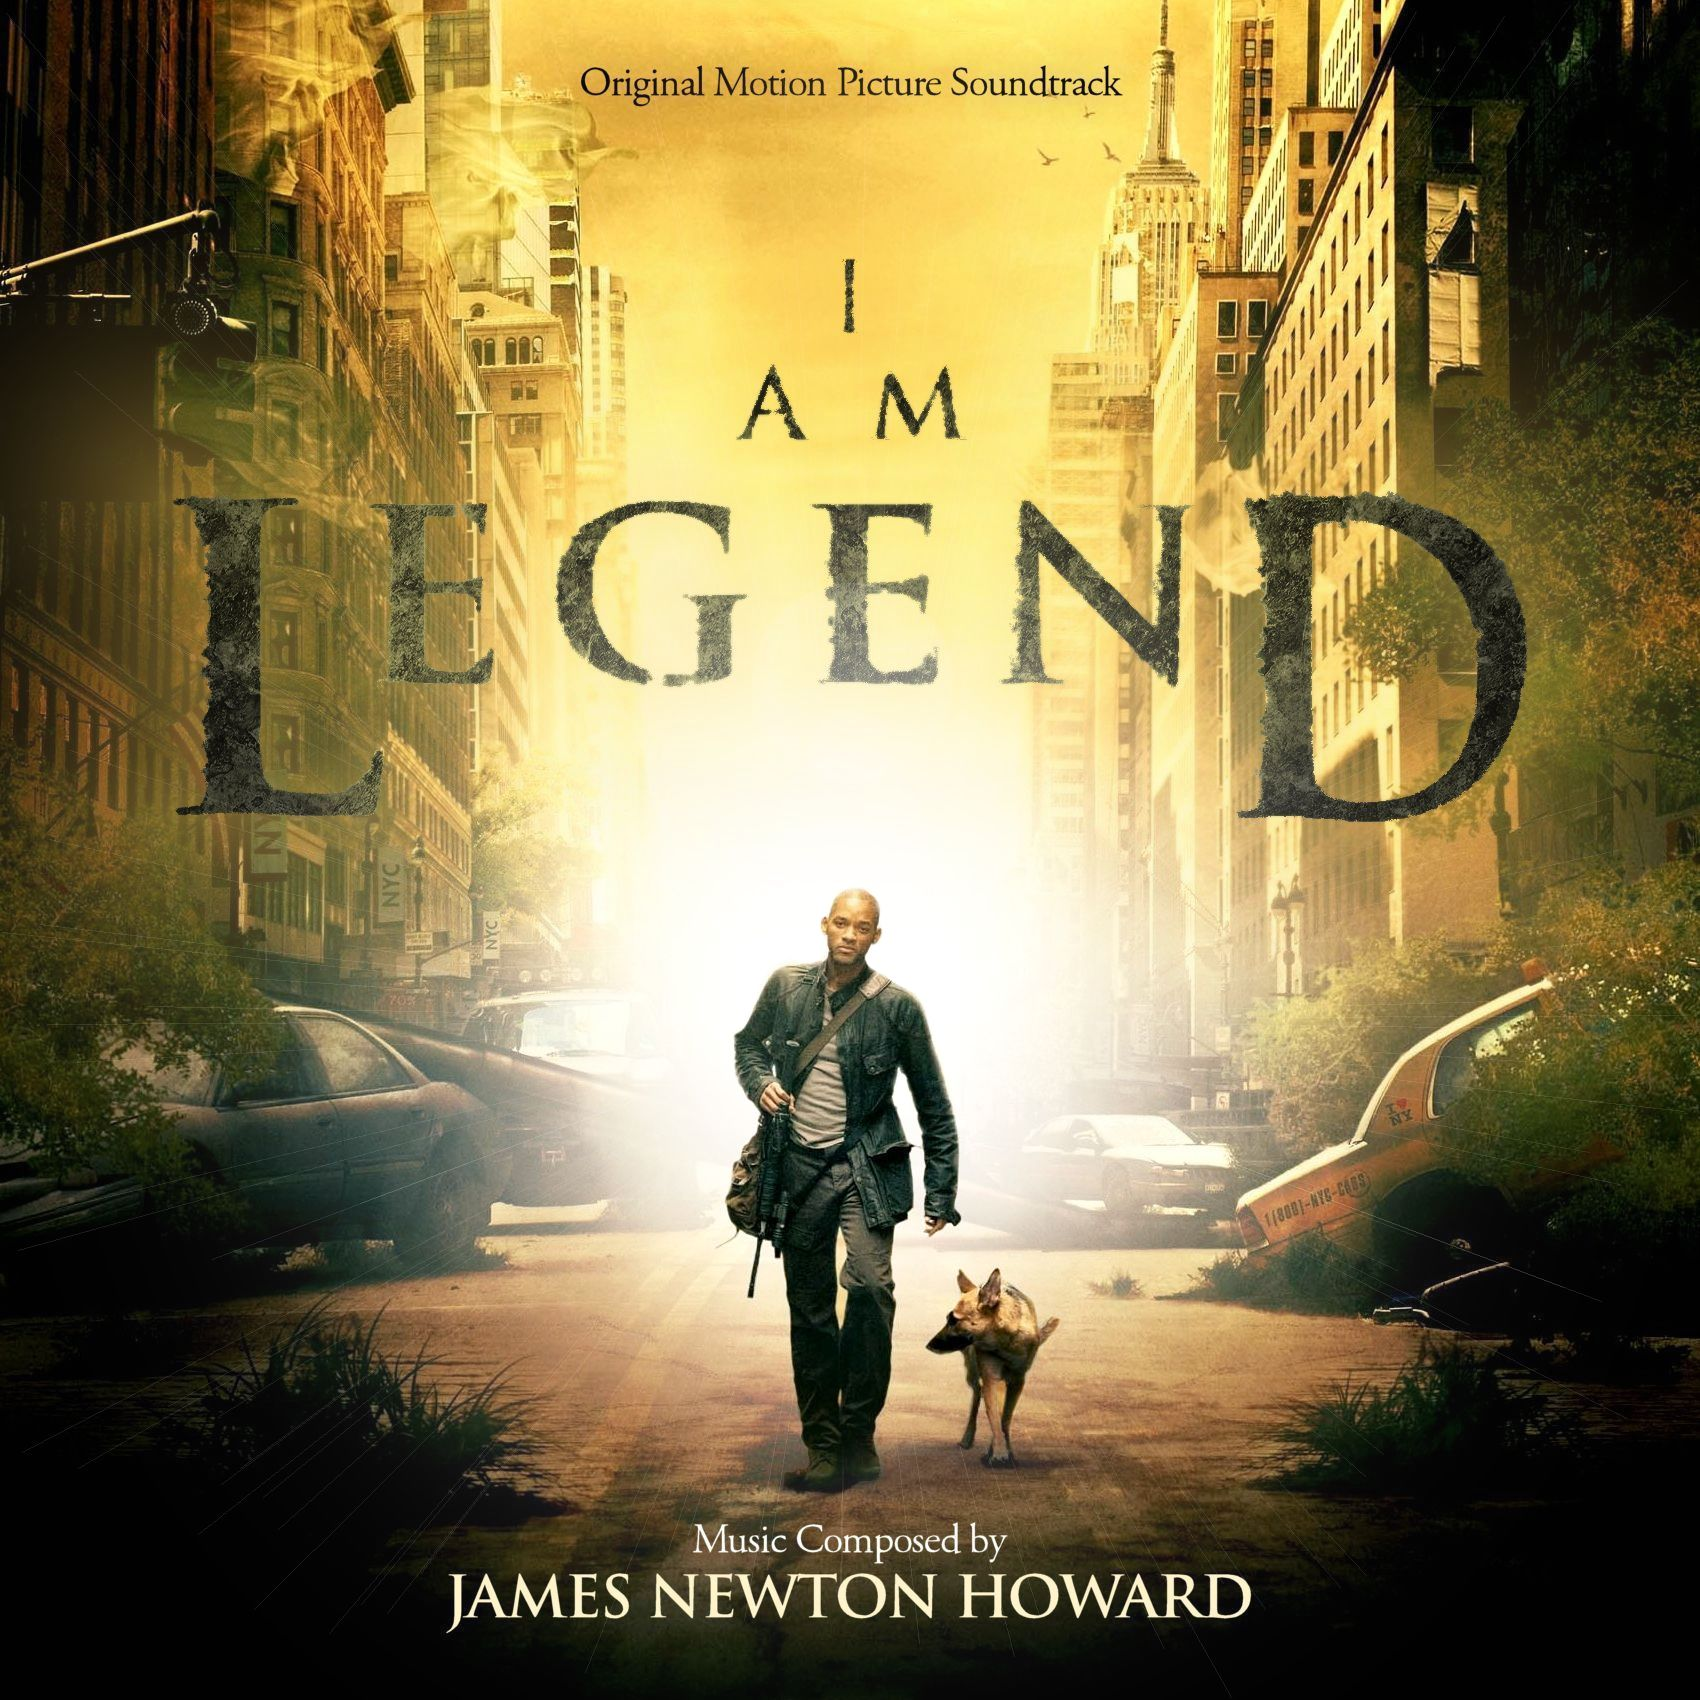 i am legend film reveiw I am legend type movie current status in season mpaa pg-13 runtime 100 minutes wide release date 12/14/07 performer alice braga, will smith, salli richardson.